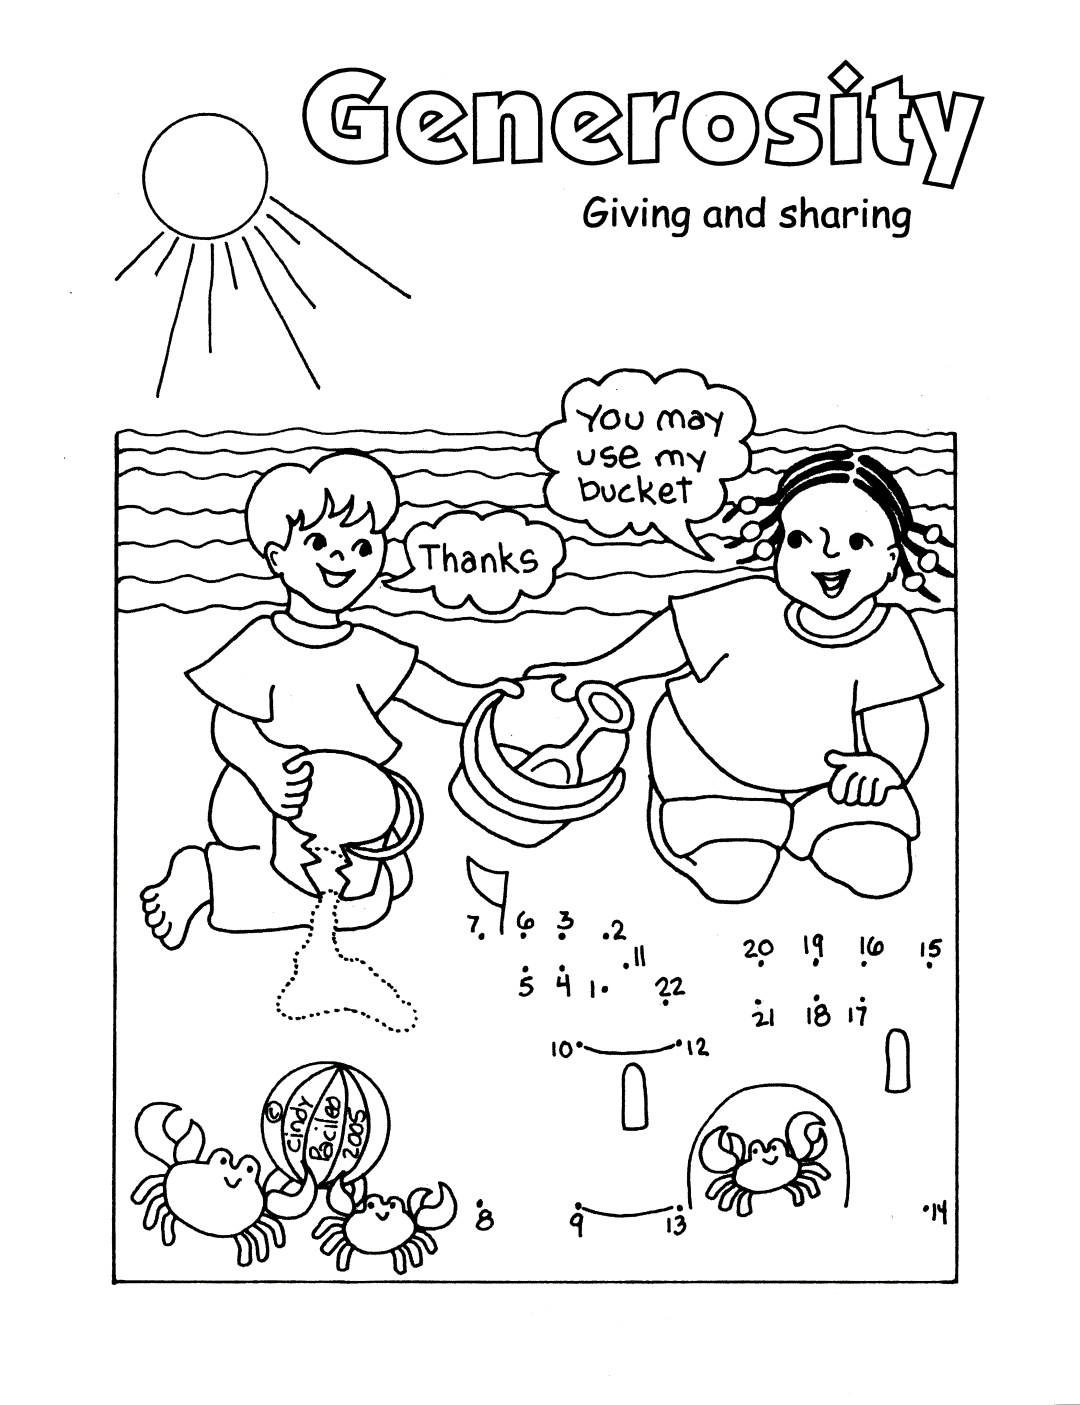 Generosity - giving and sharing